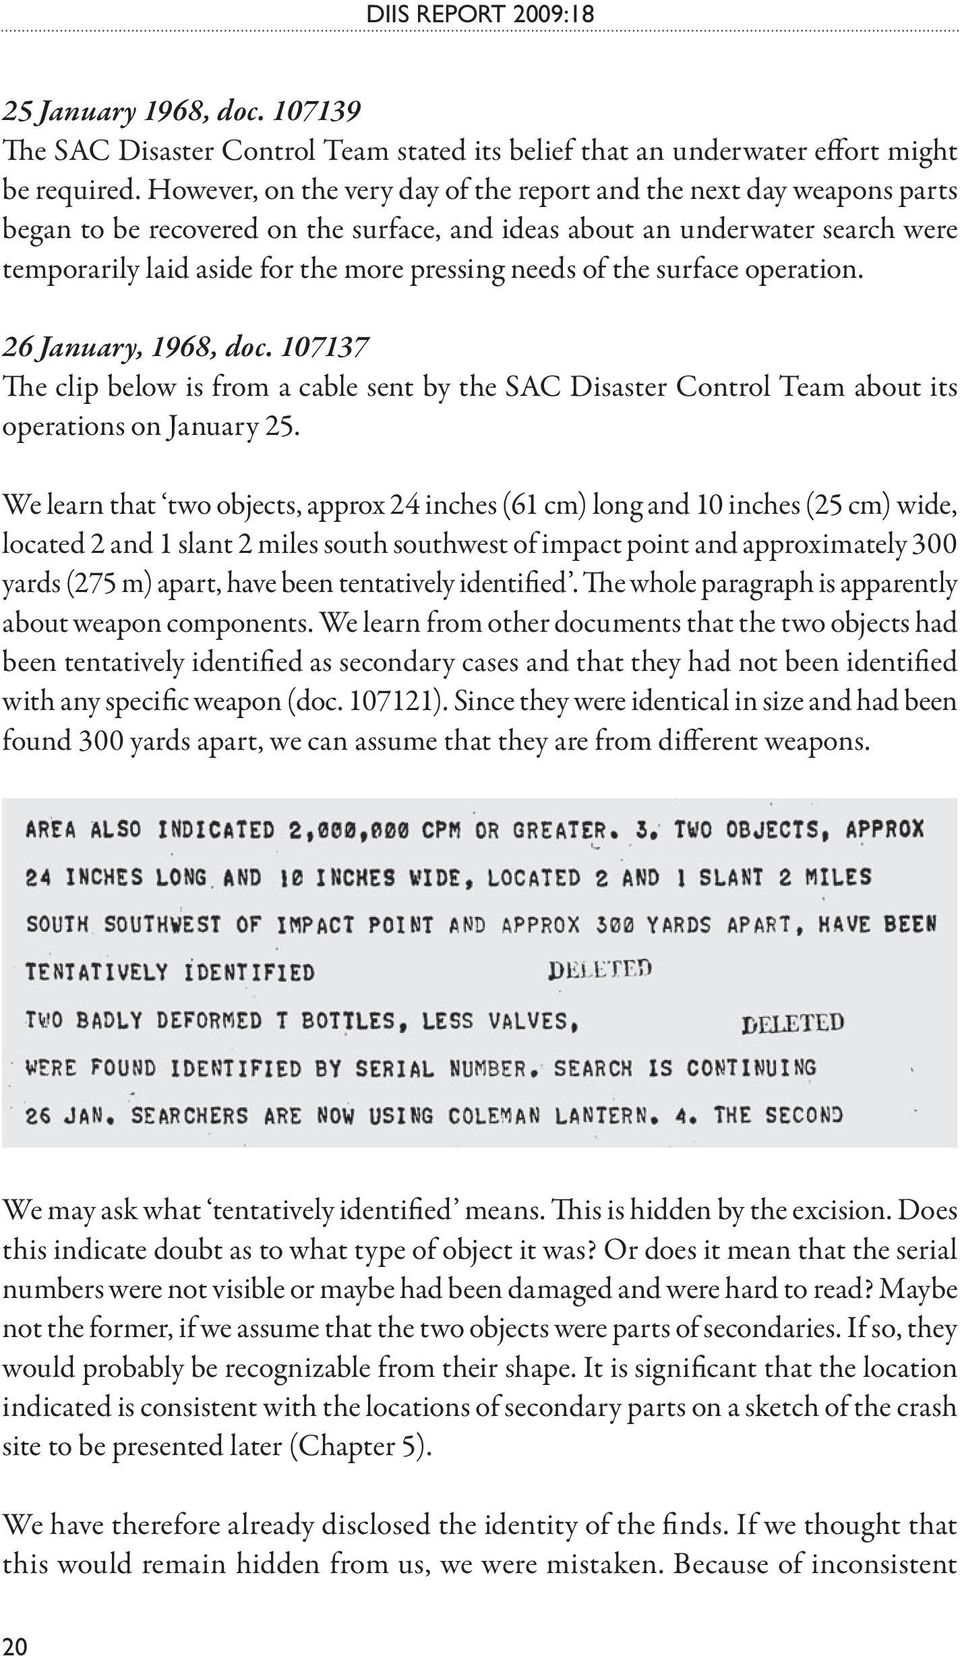 needs of the surface operation. 26 January, 1968, doc. 107137 The clip below is from a cable sent by the SAC Disaster Control Team about its operations on January 25.